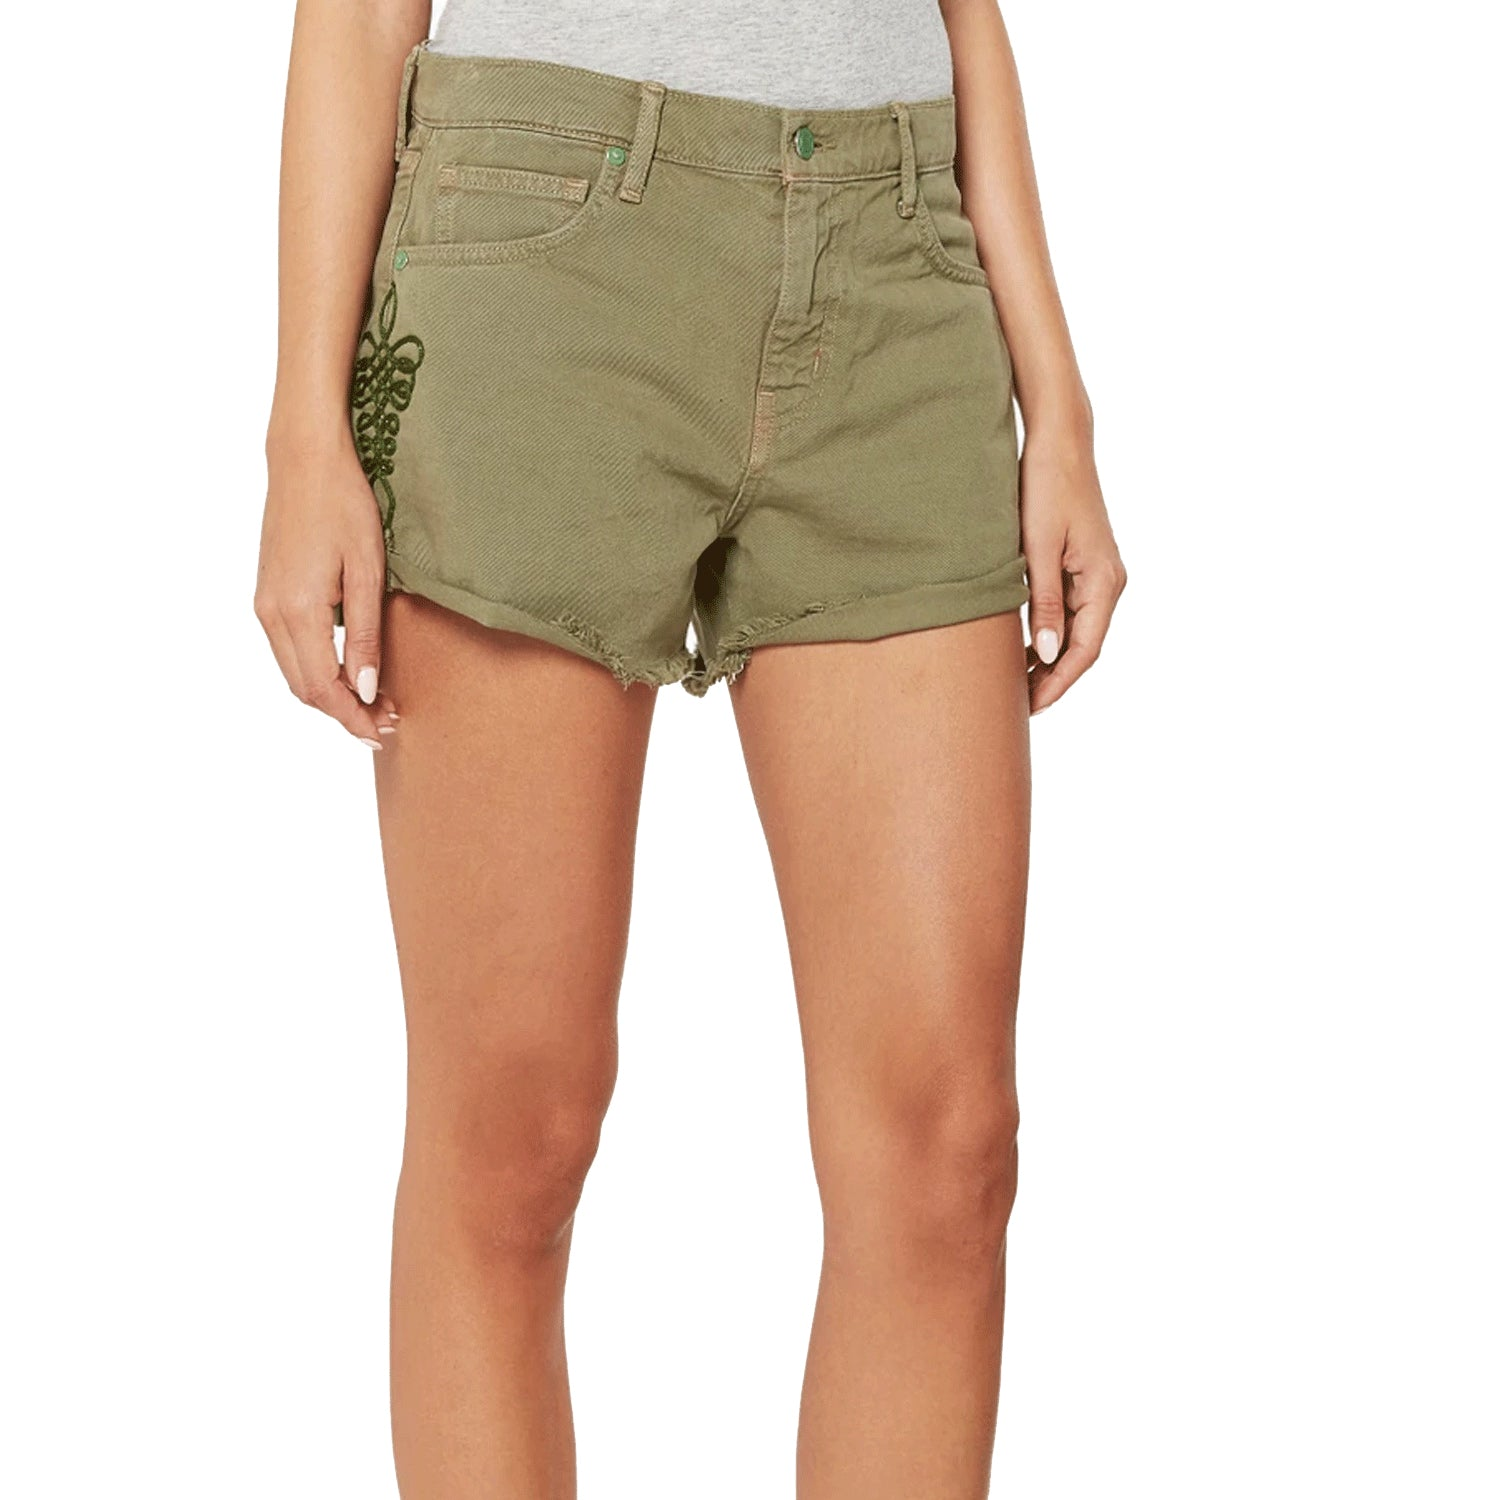 Sandrine Rose Embroidered Denim Cut Off Shorts 25 Army Green Muse Boutique Outlet